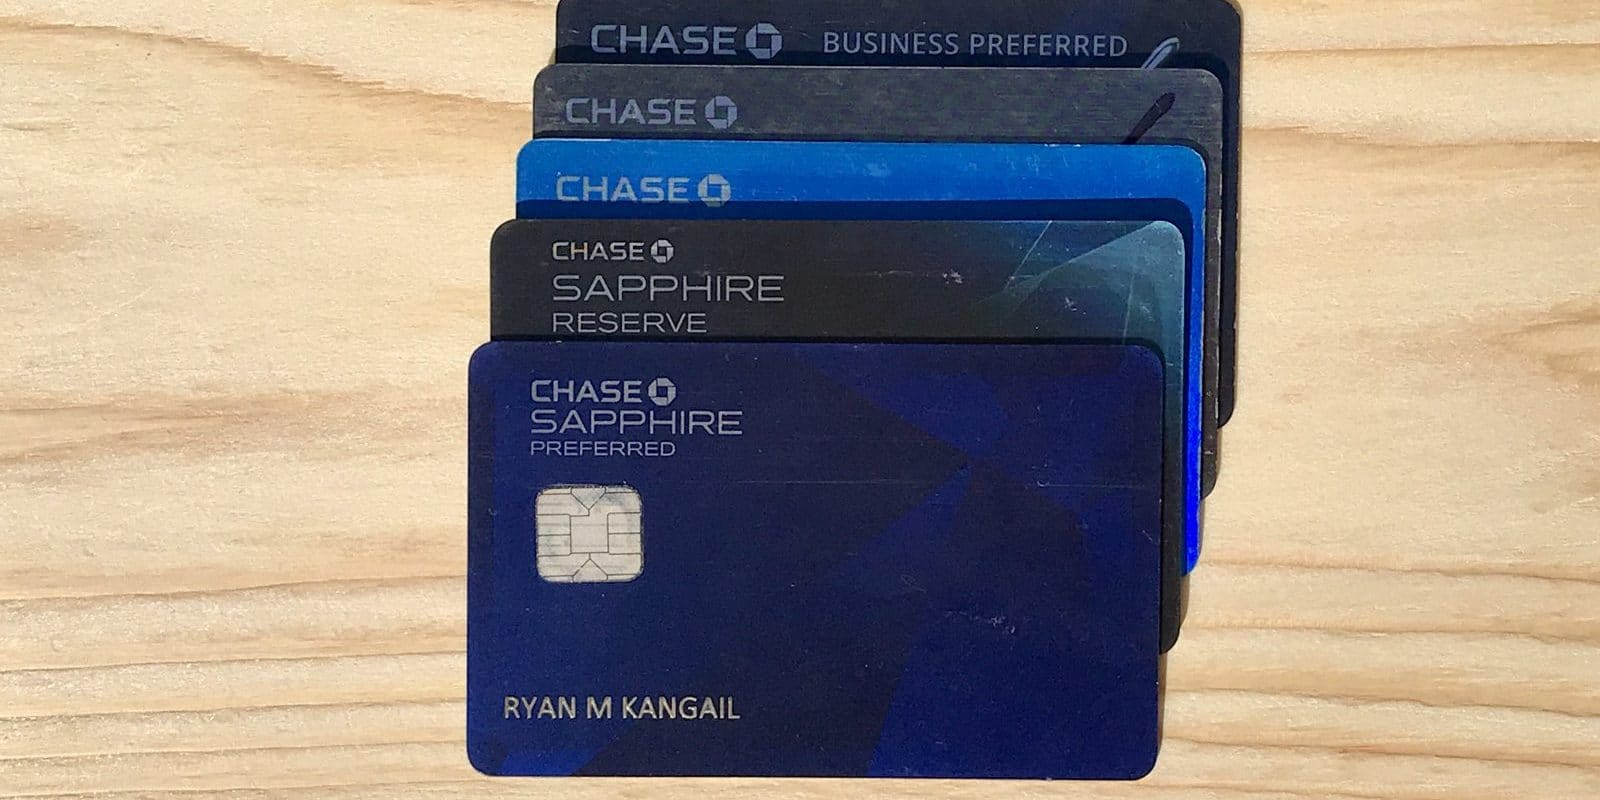 Chase credit cards to pair with chase sapphire preferred